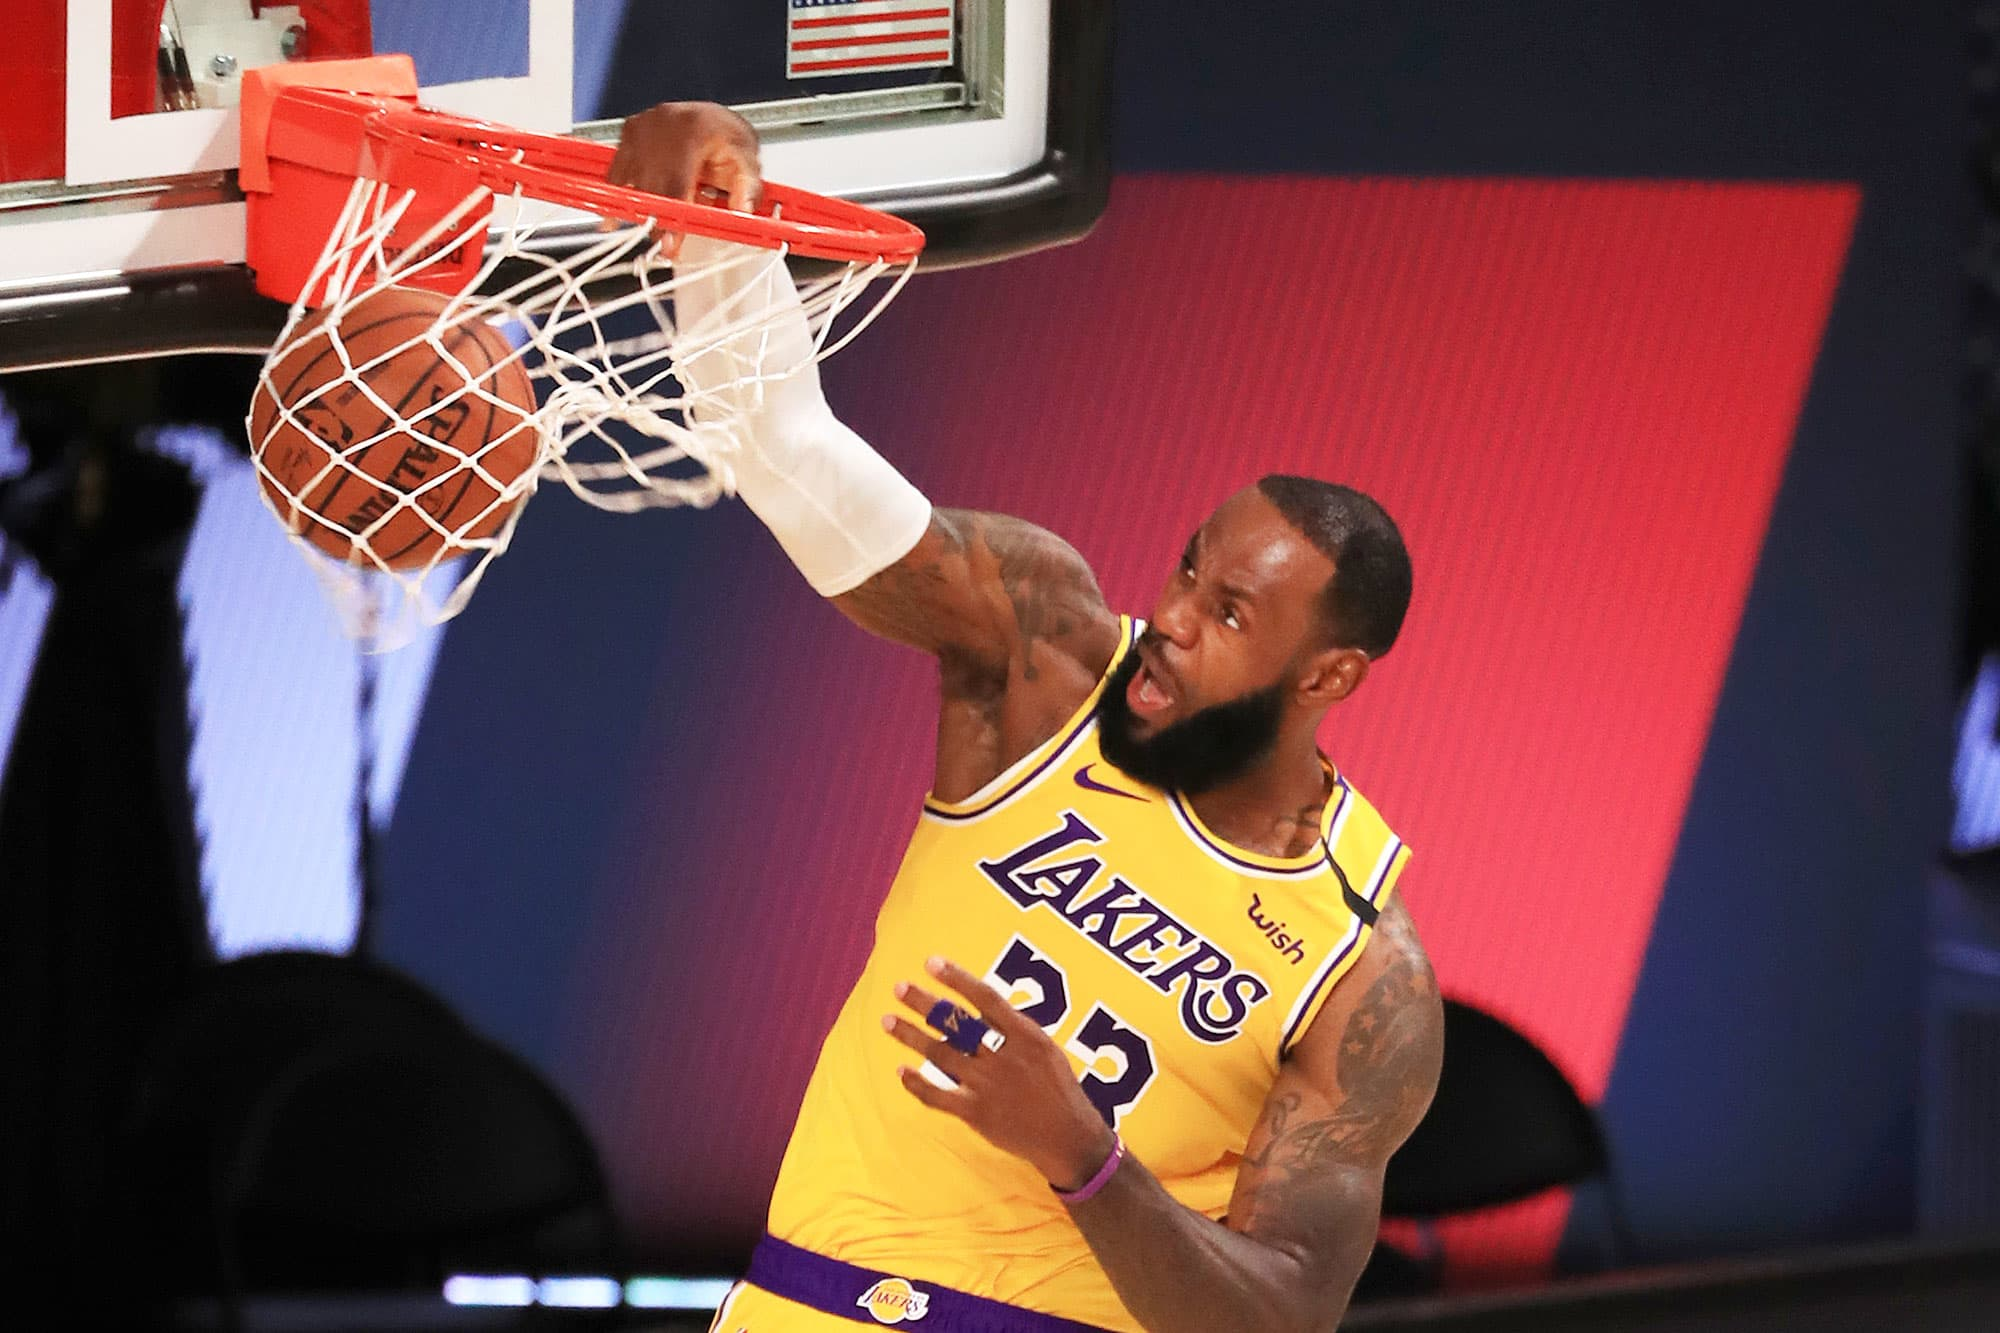 LeBron James is upset about the way the NBA treated players during the pandemic — but the money matters too much